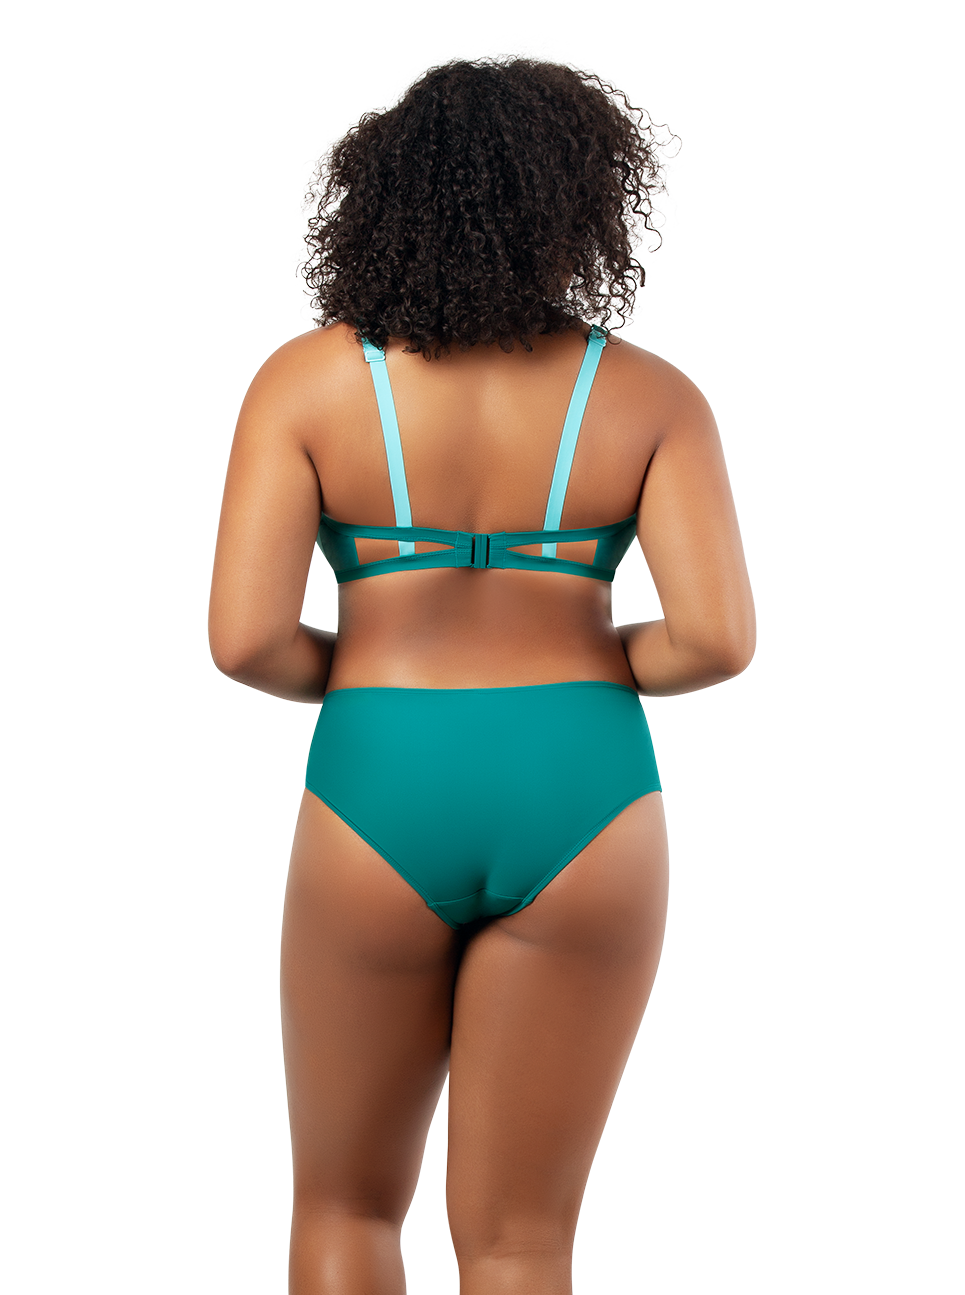 PARFAIT Lauren TriangleSwimTopS8222 HighwaistBikiniBottomS8223 DarkMintWTIbetanStone Black - Lauren Triangle Swim Top Dark Mint w Tibetan Stone S8222